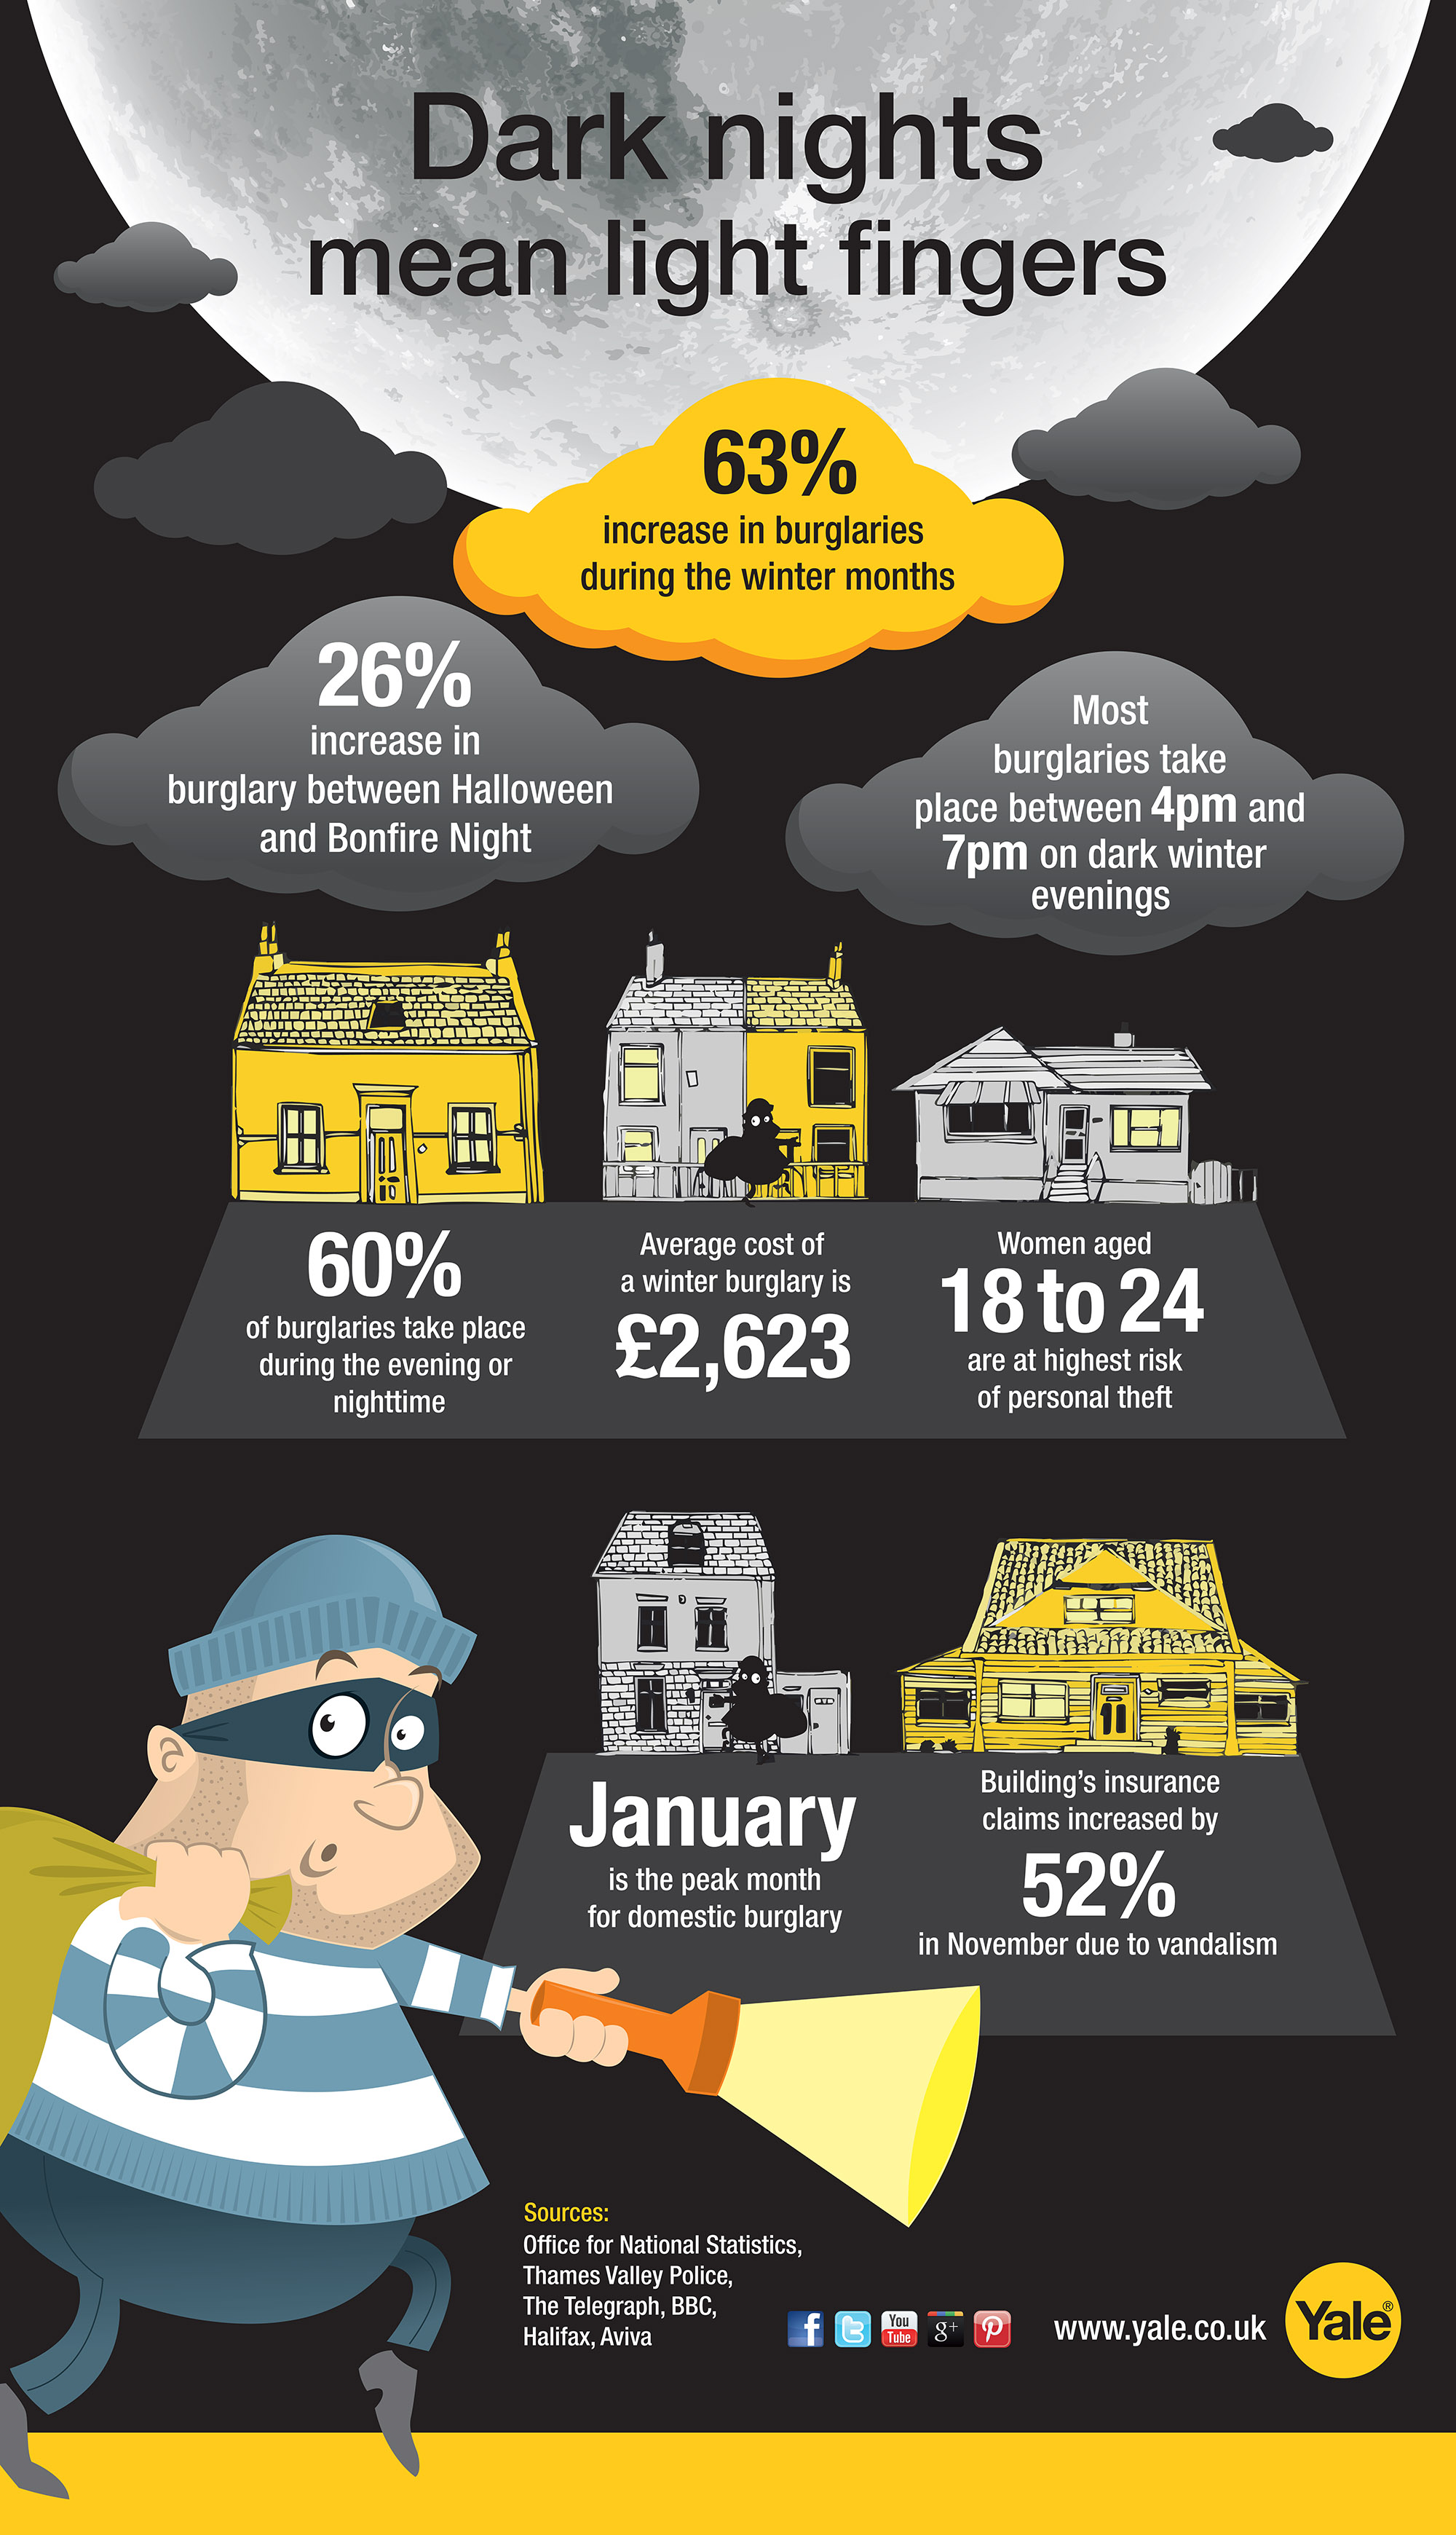 Dark nights mean increased burglaries